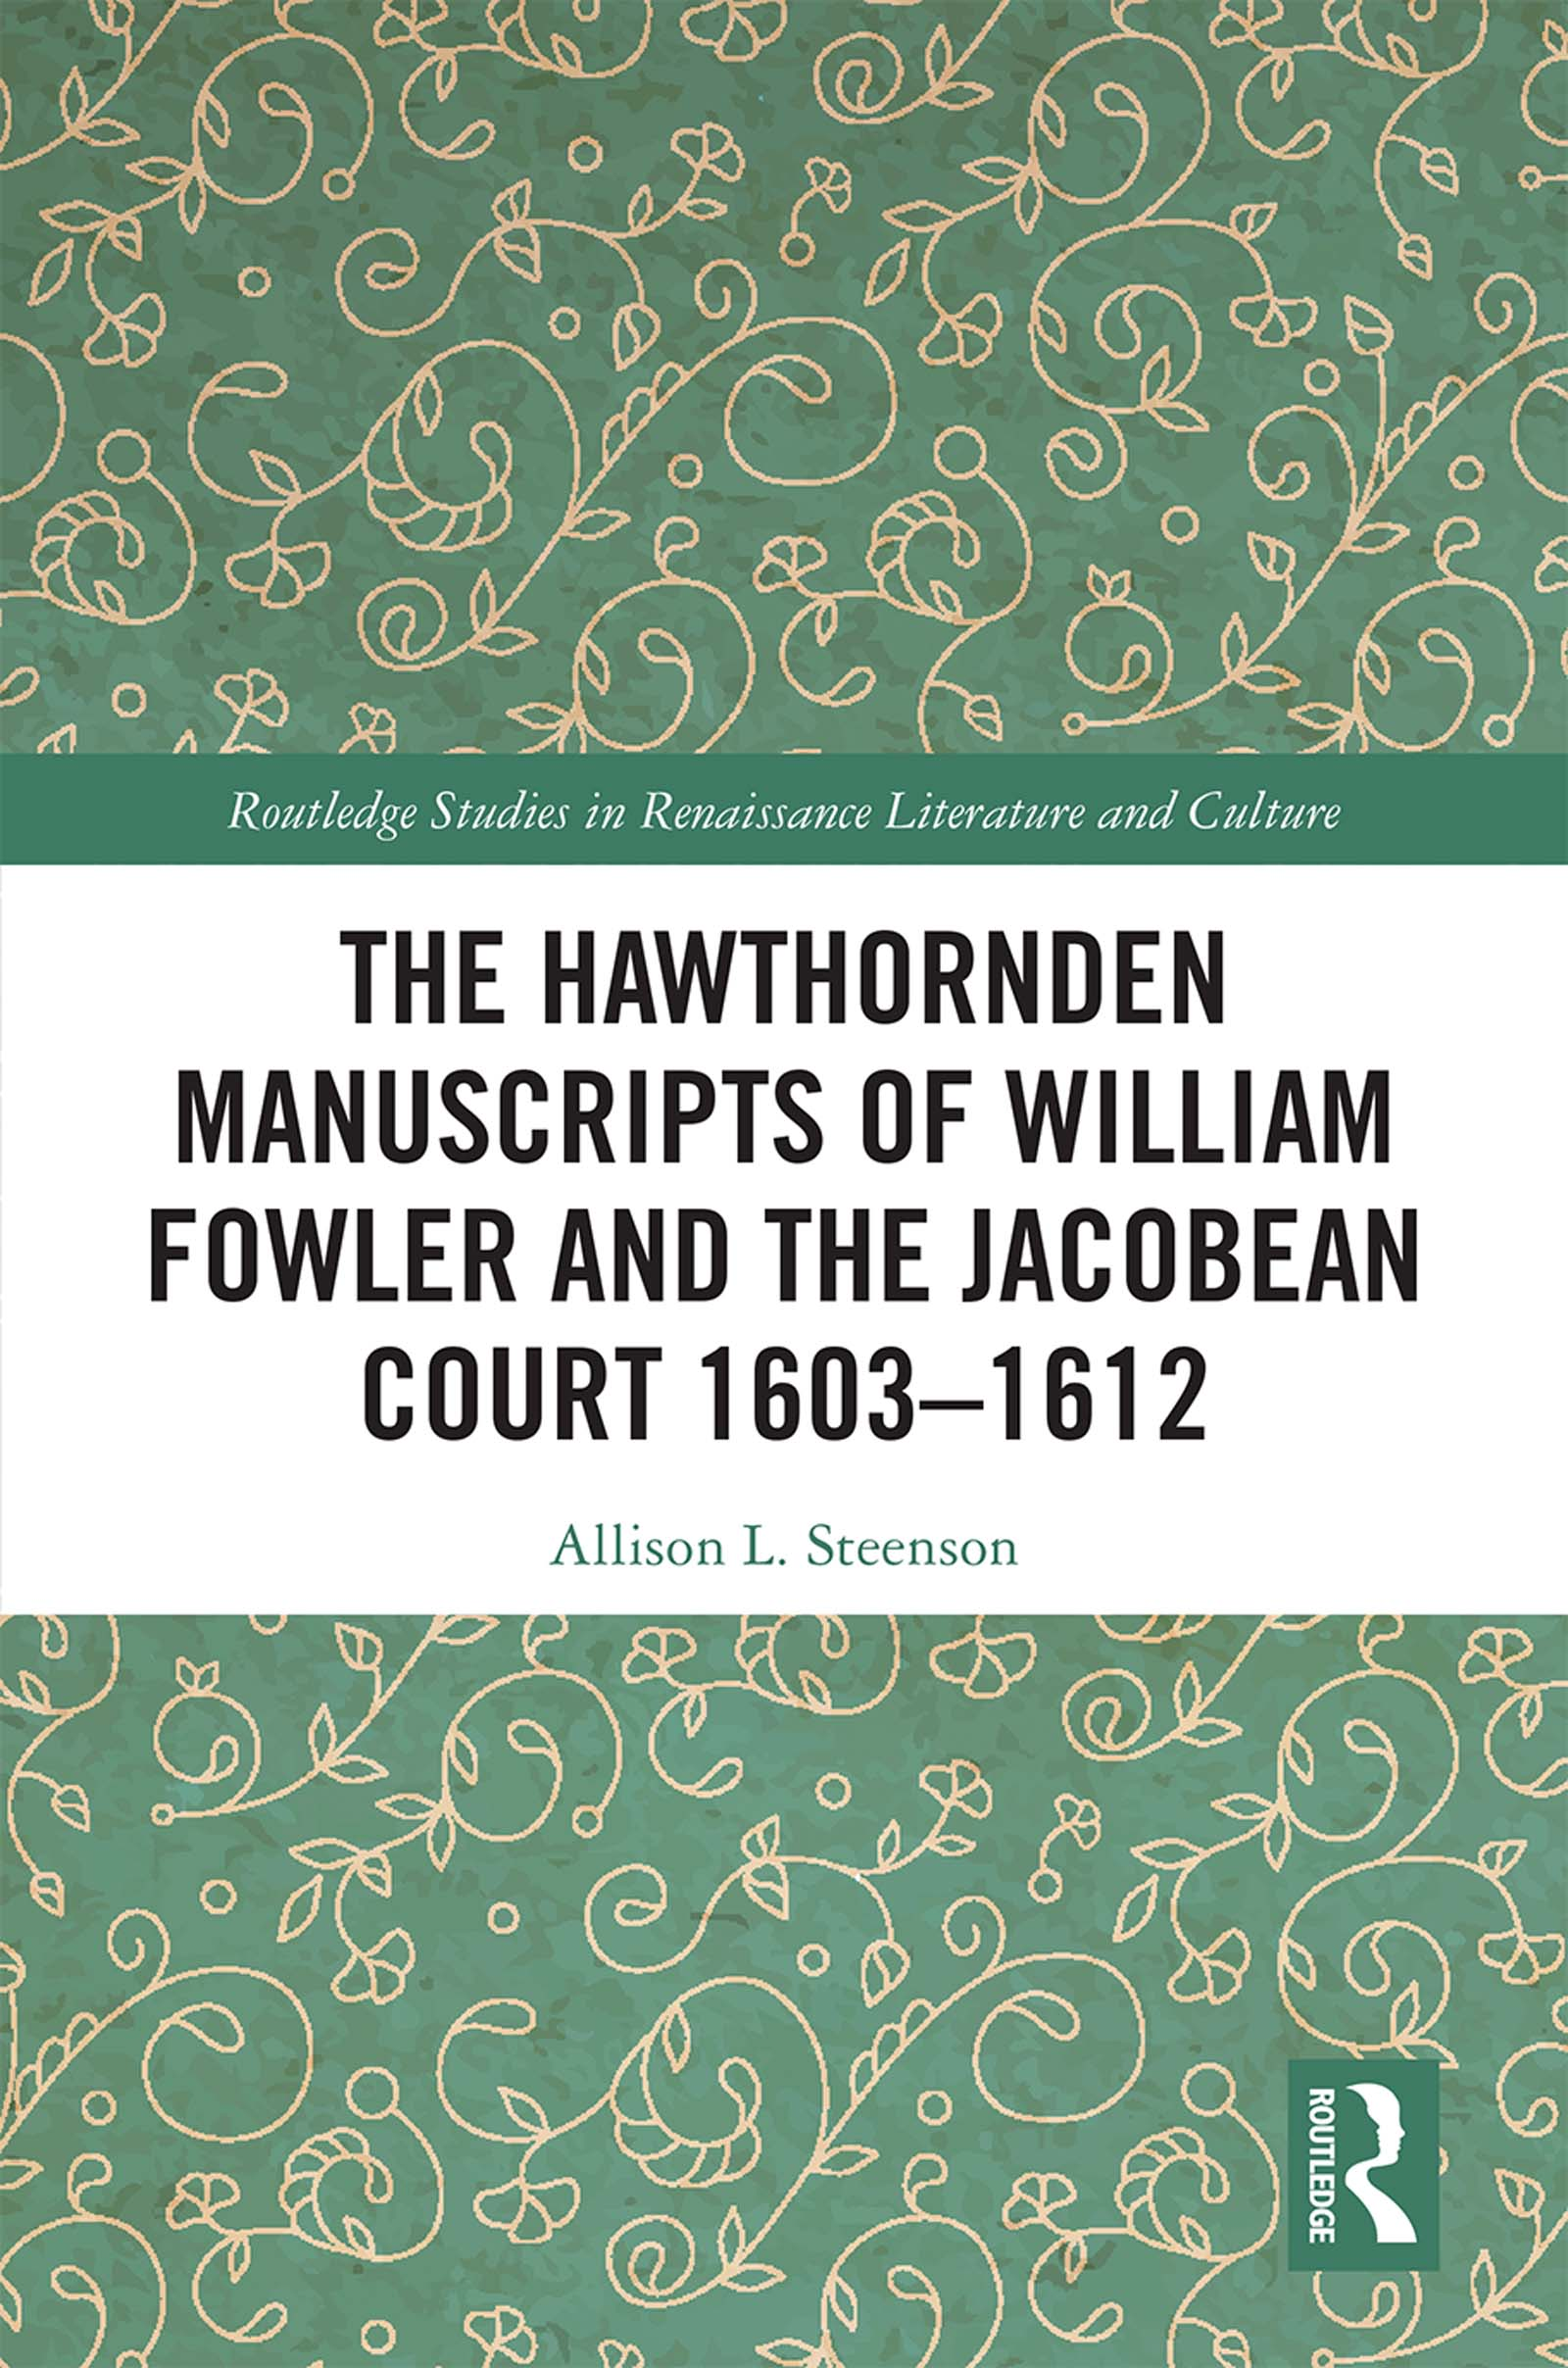 The Hawthornden Manuscript of William Fowler and the Jacobean Court 1603-1612